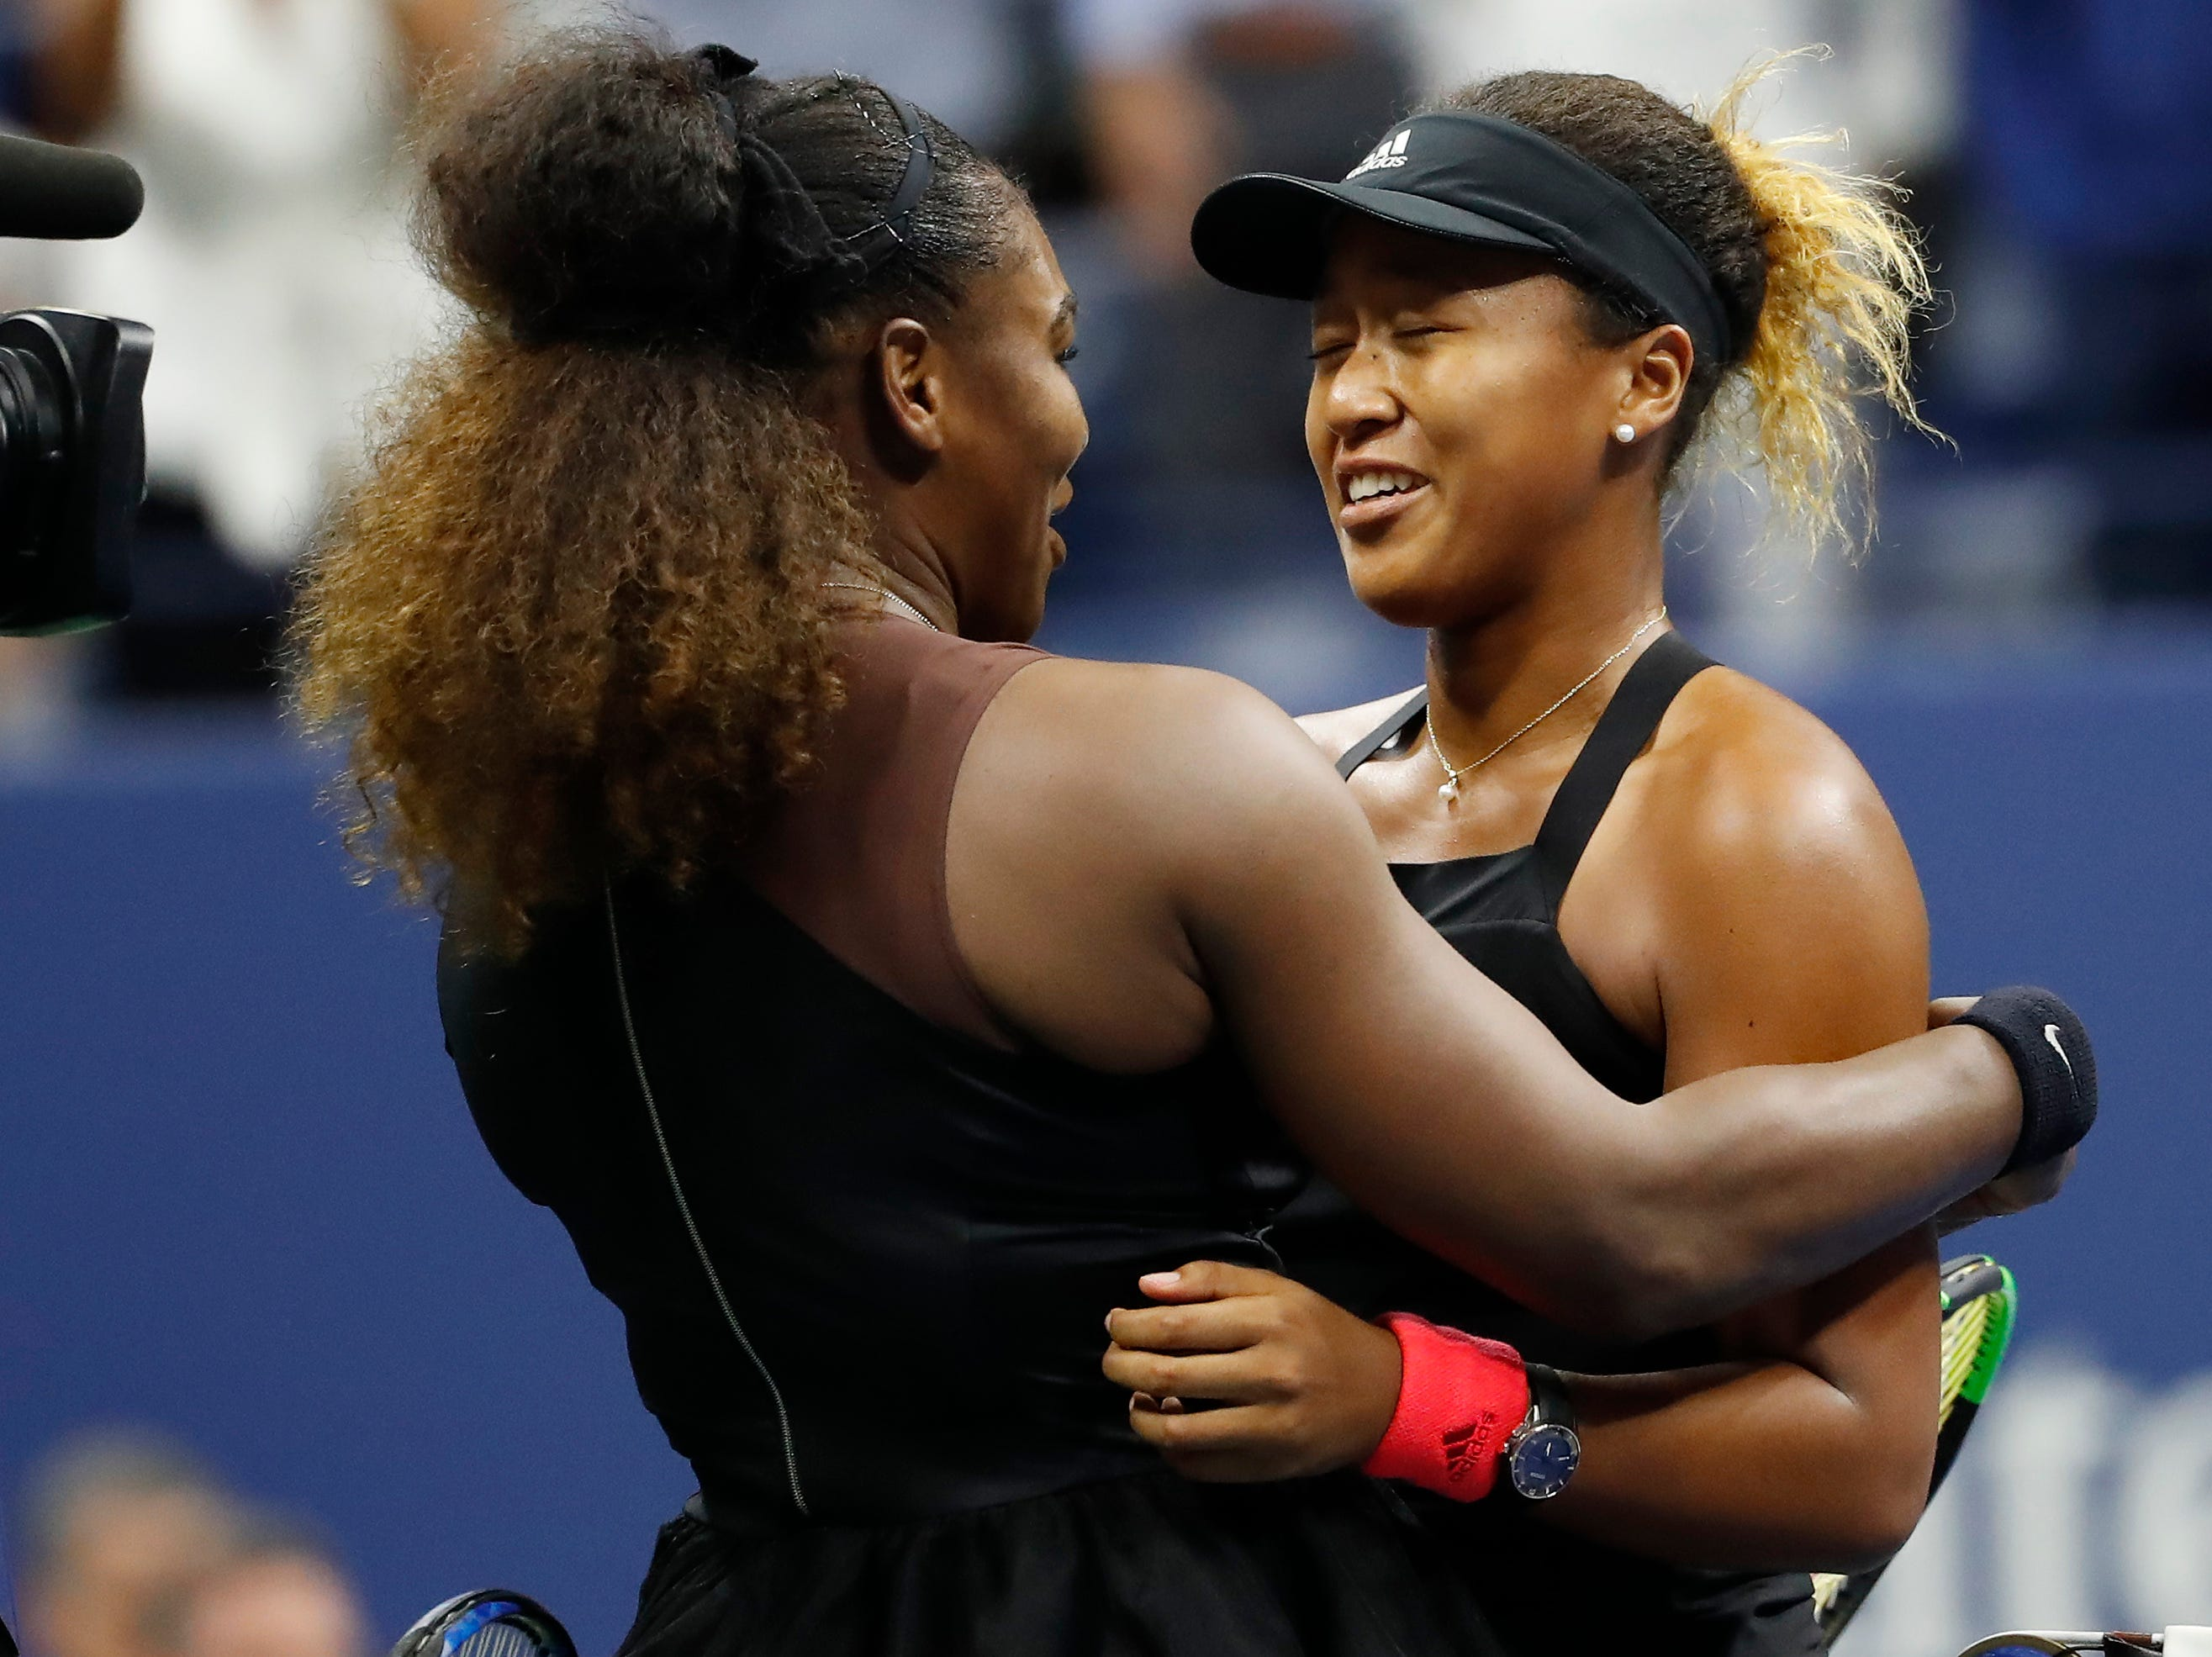 Naomi Osaka, right, won the US Open final 6-2, 6-4 against Serena Williams. Williams was assessed a game penalty in the second set for code violations.